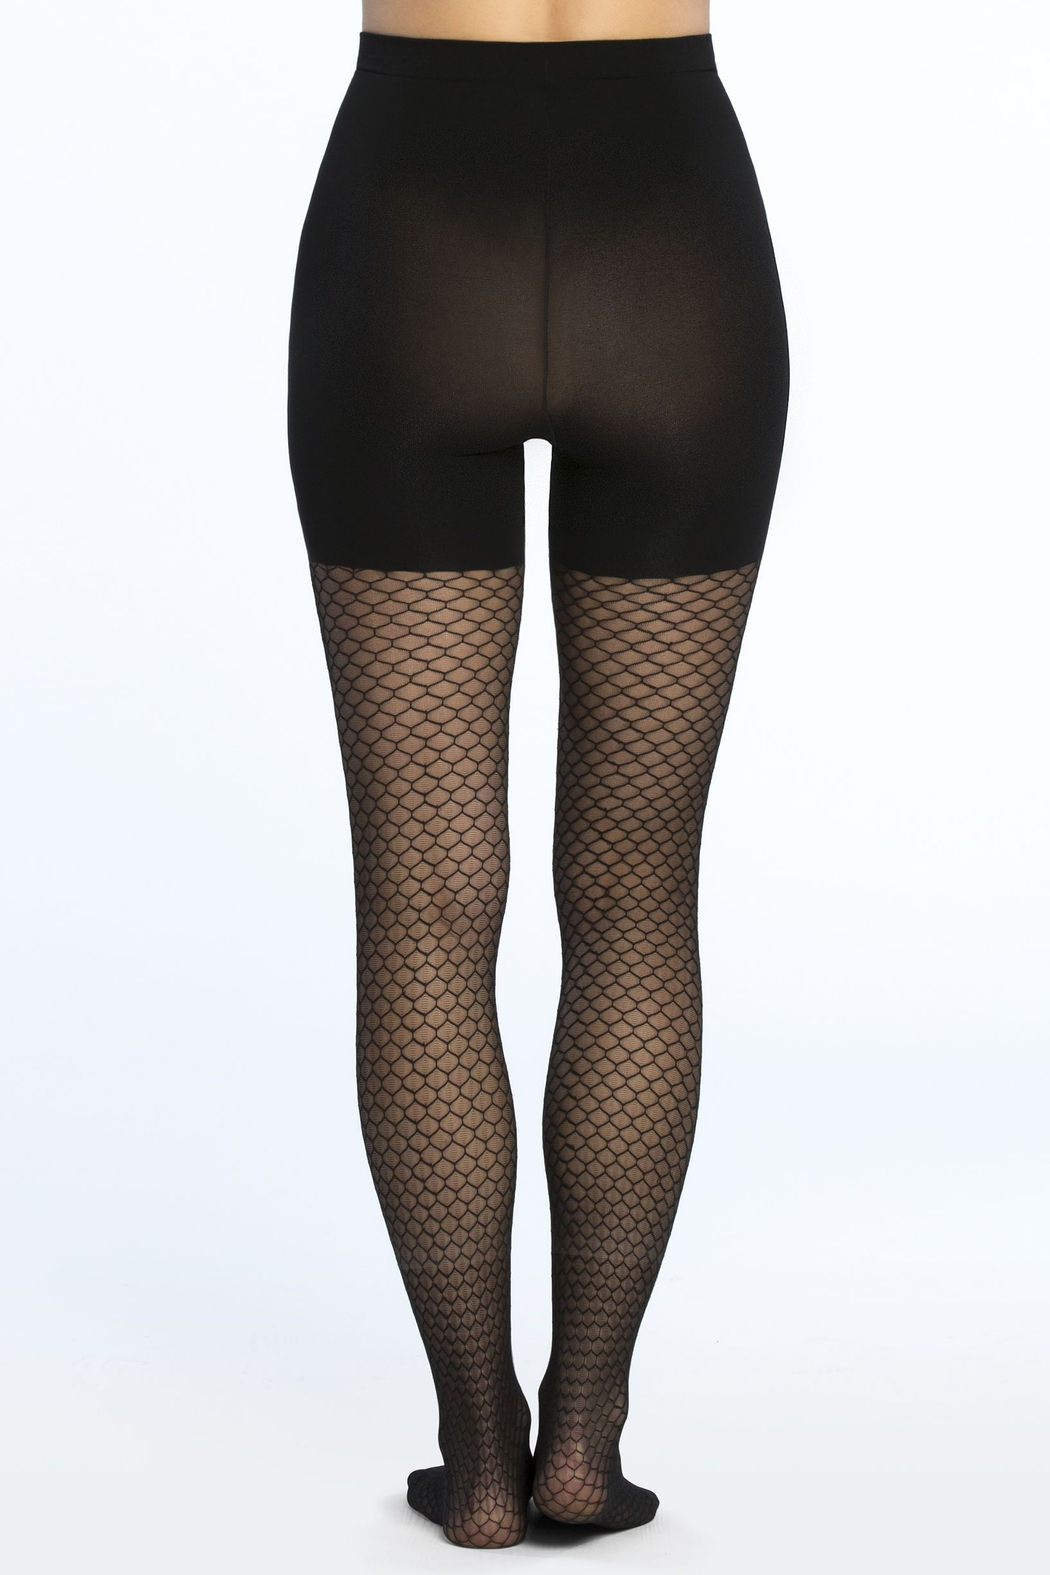 Spanx Tight-End Tights - Honeycomb Fishnet - Side Cropped Image